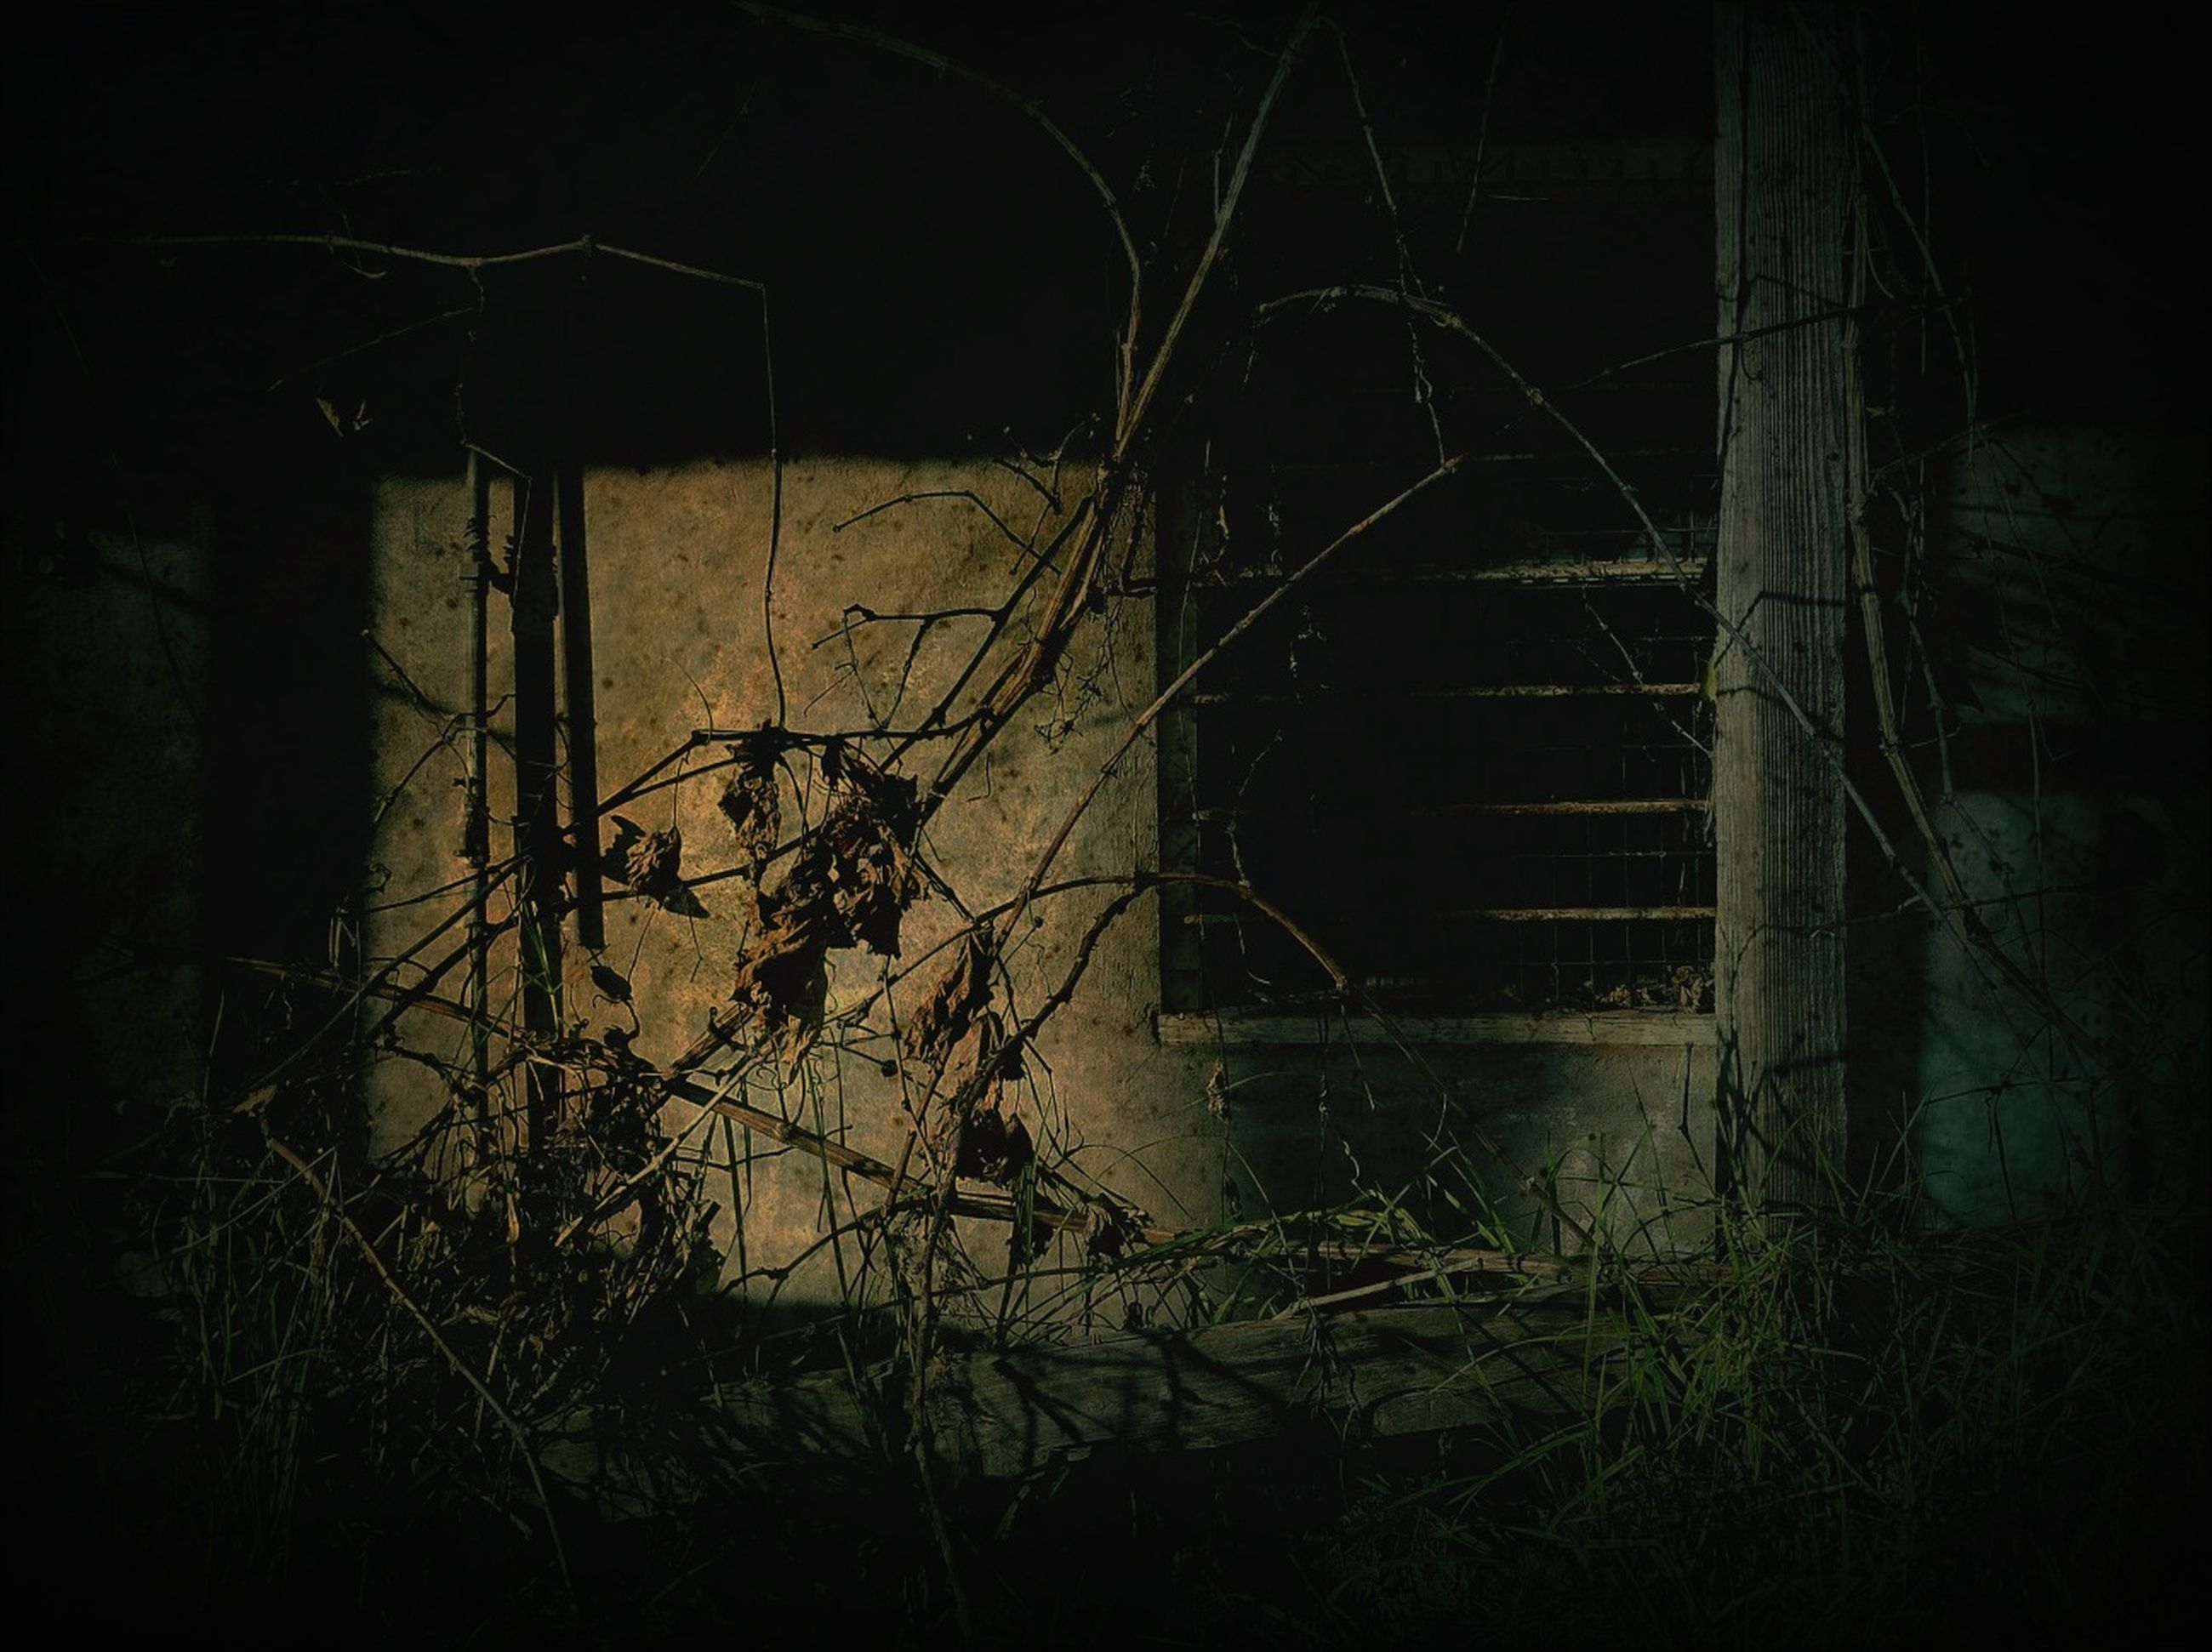 night, abandoned, dark, built structure, damaged, obsolete, old, illuminated, architecture, no people, tree, outdoors, branch, metal, bare tree, house, plant, run-down, grass, deterioration